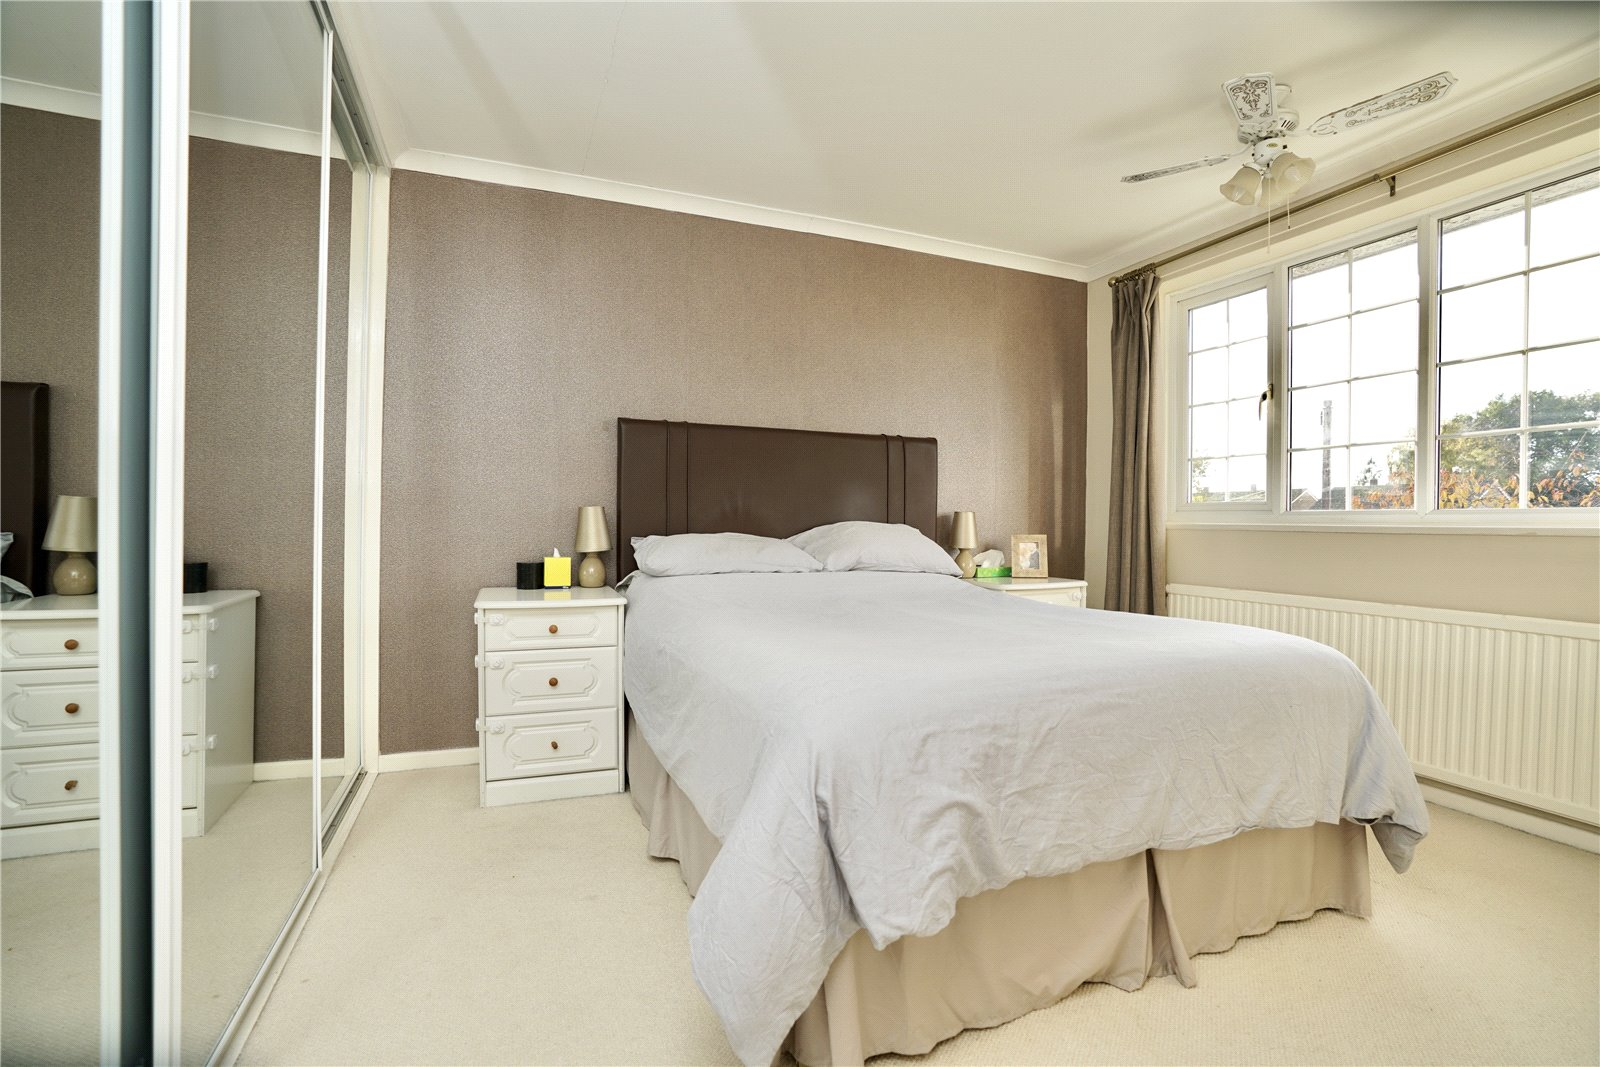 3 bed house for sale in Gordon Road, Little Paxton 7